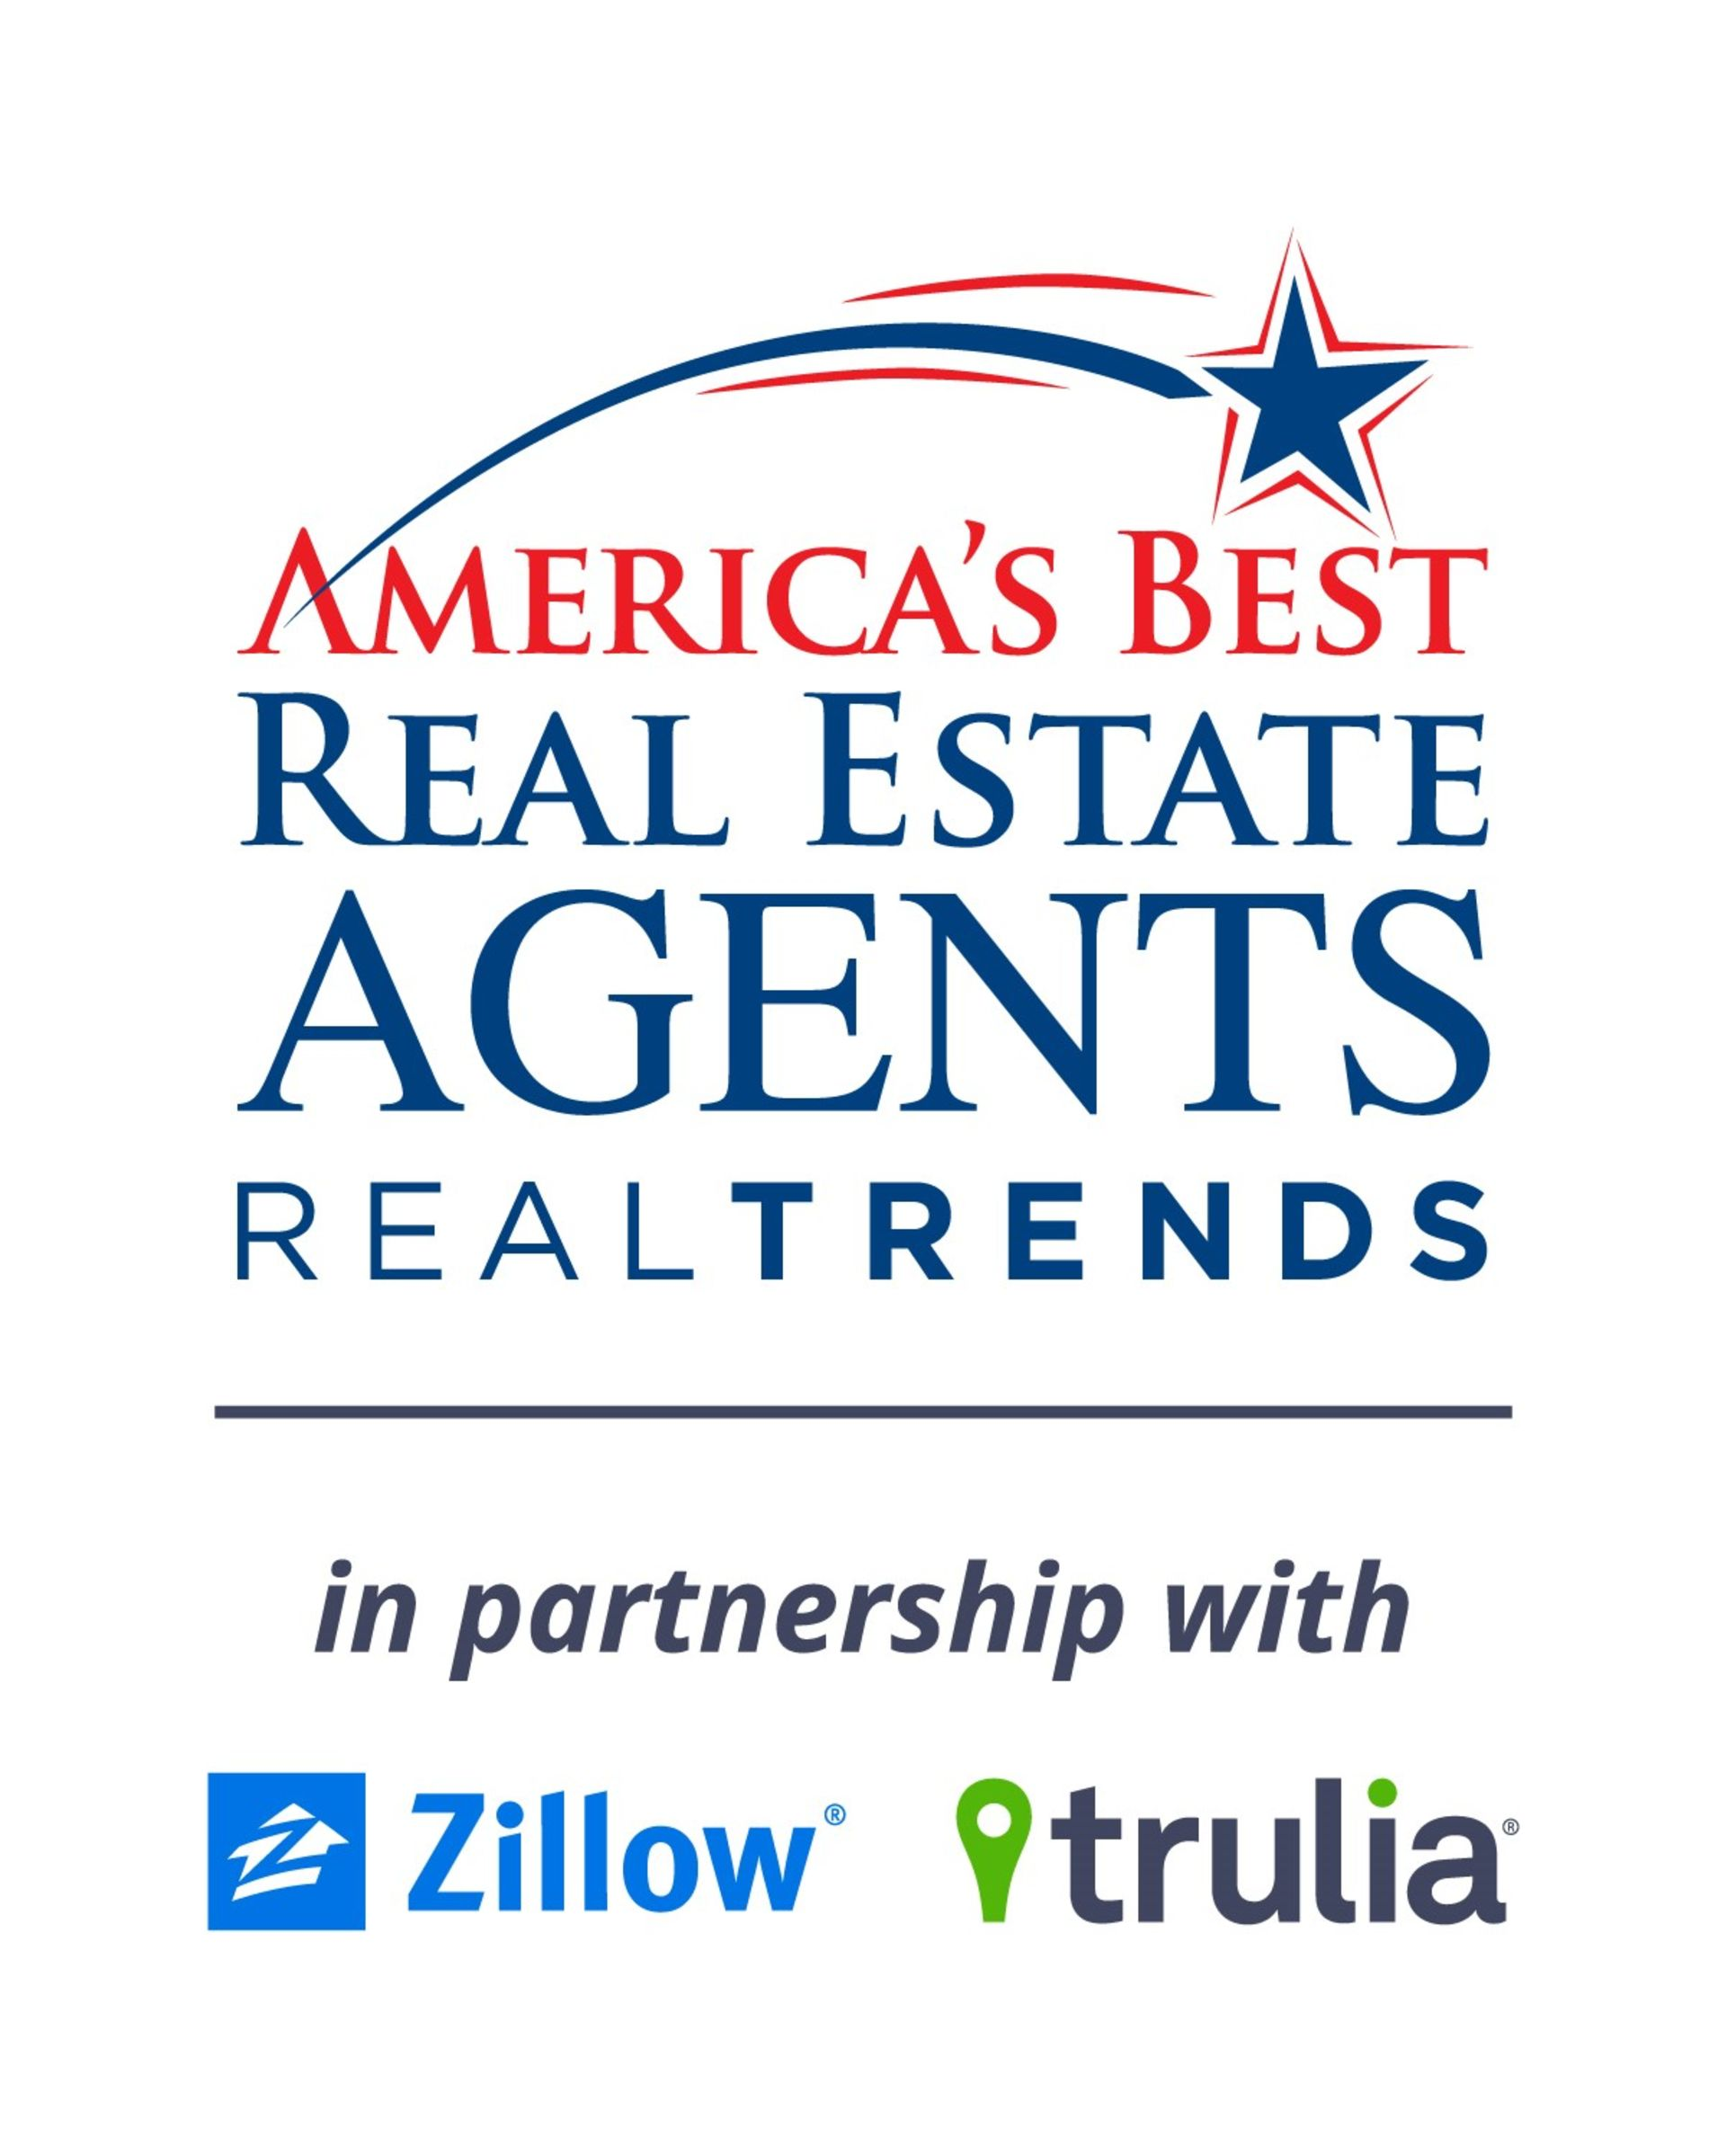 Local Keller Williams Emerald Coast Realty agents earn REAL Trends America's Best Real Estate Agents national ranking